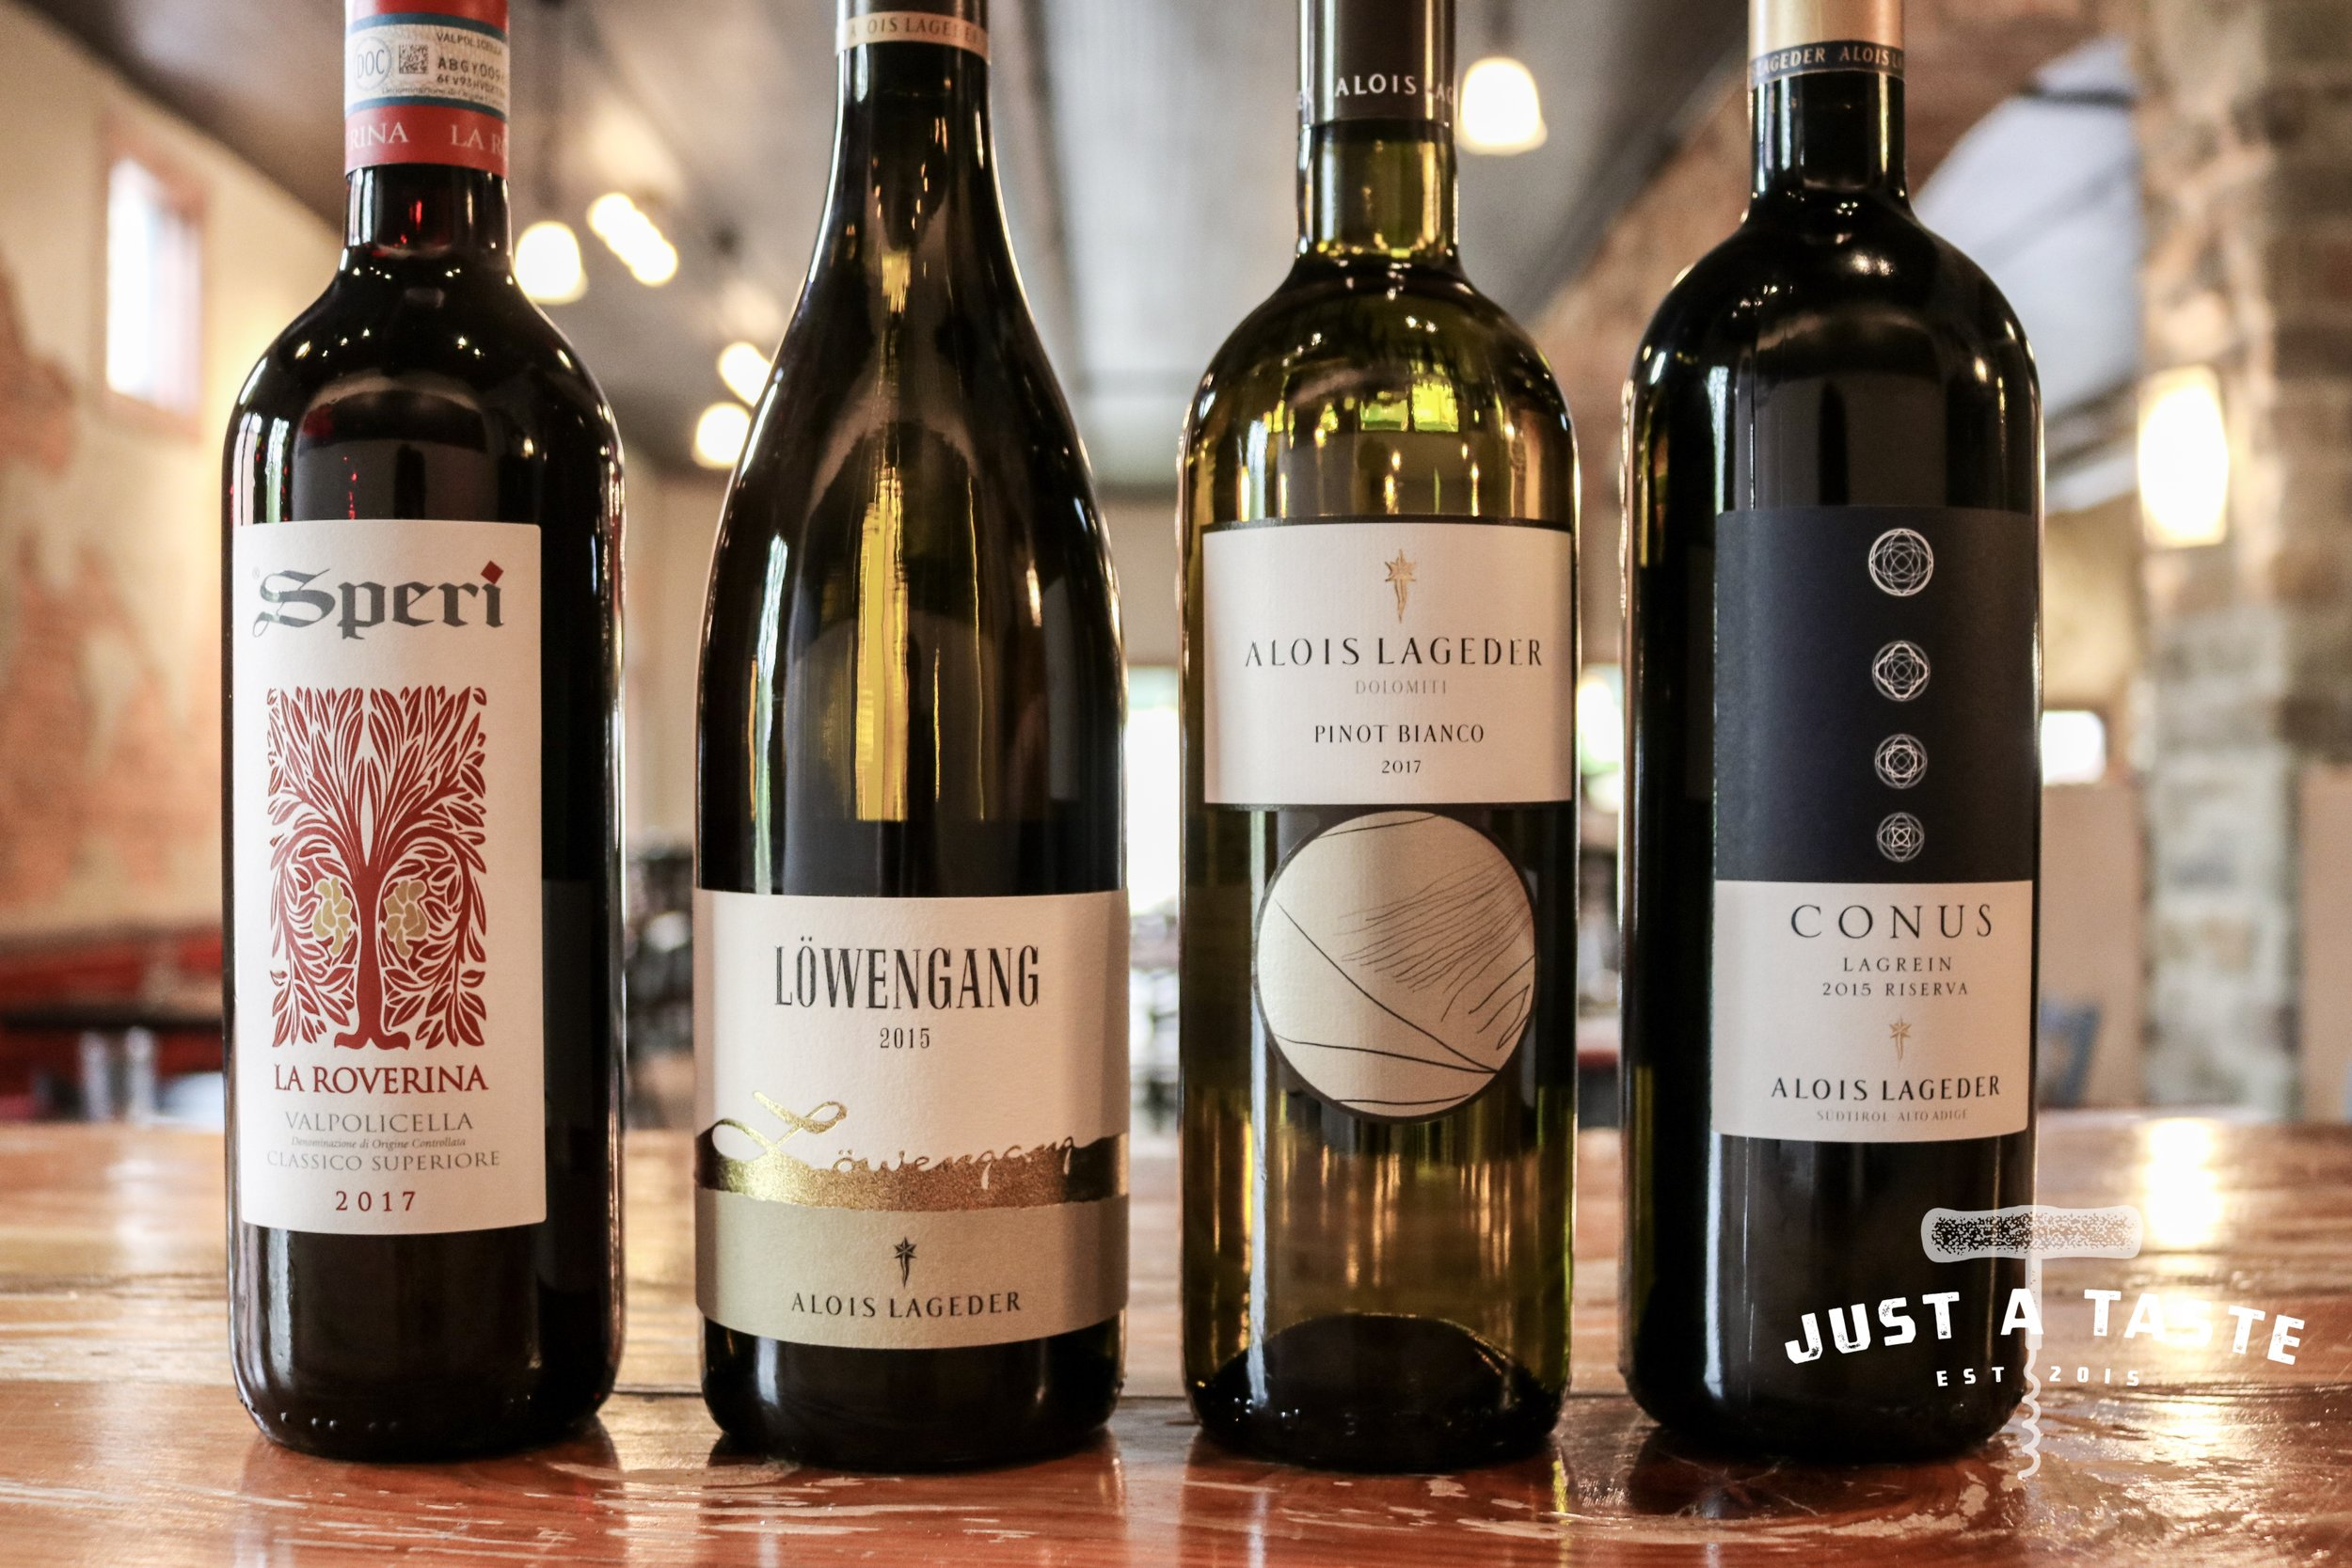 Alois Lageder Lowengang Chardonnay and Alois Lageder Conus Lagrein are featured for the May 2019 Jefferson Club at Just A Taste. Interested in acquiring these wines? Click   HERE!